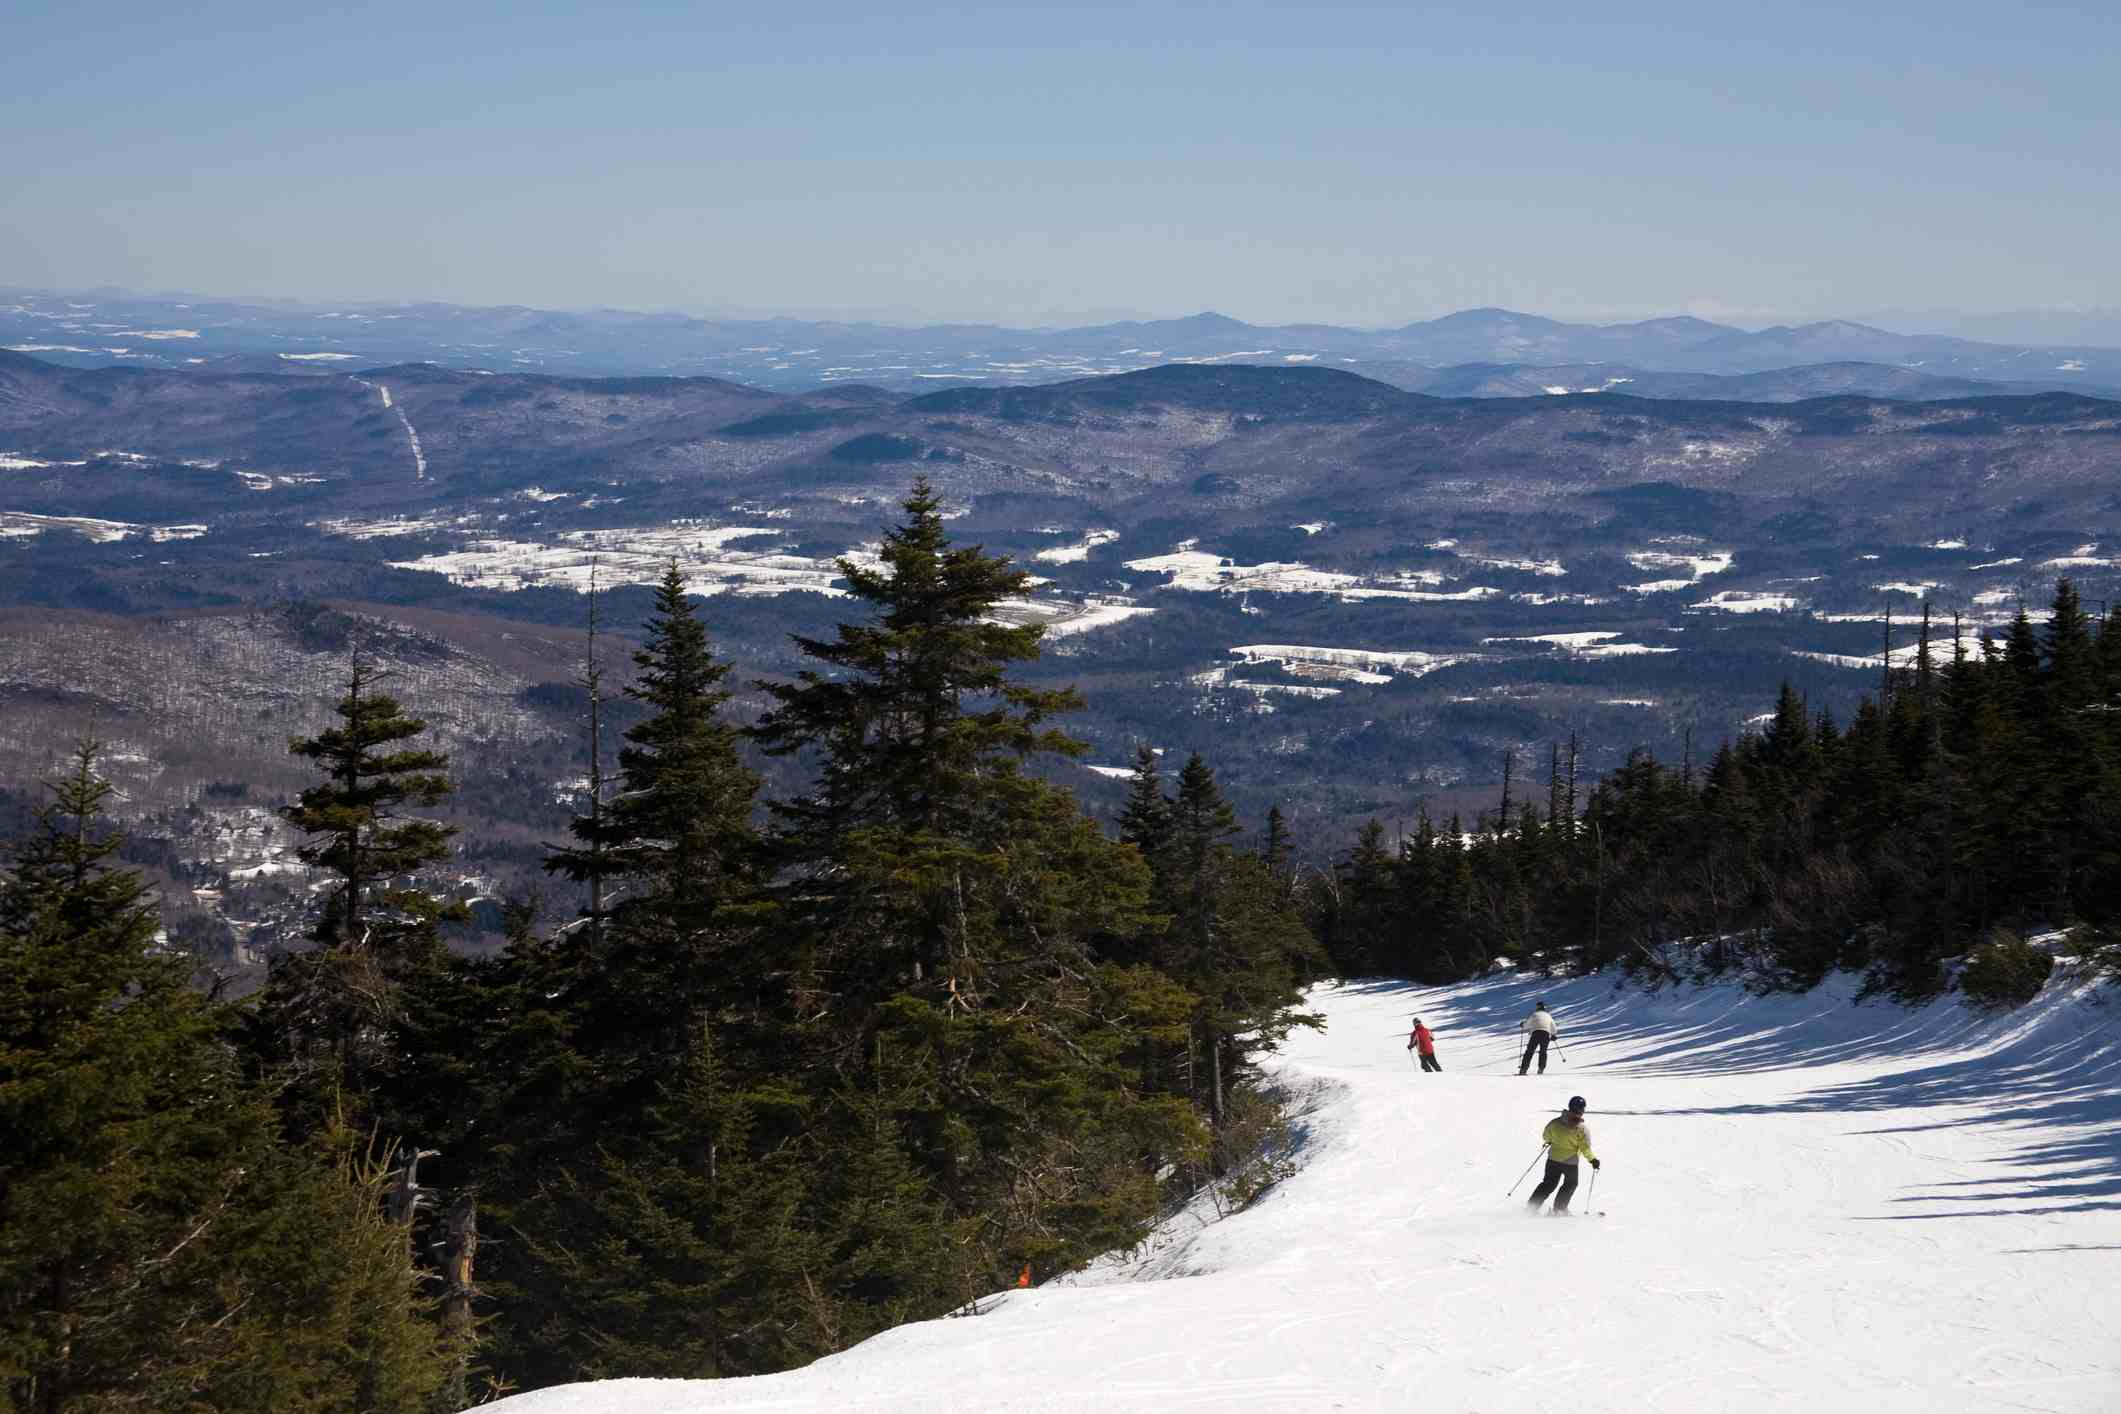 Three people ski down from the summit of Sugarbush on a trail called Jester